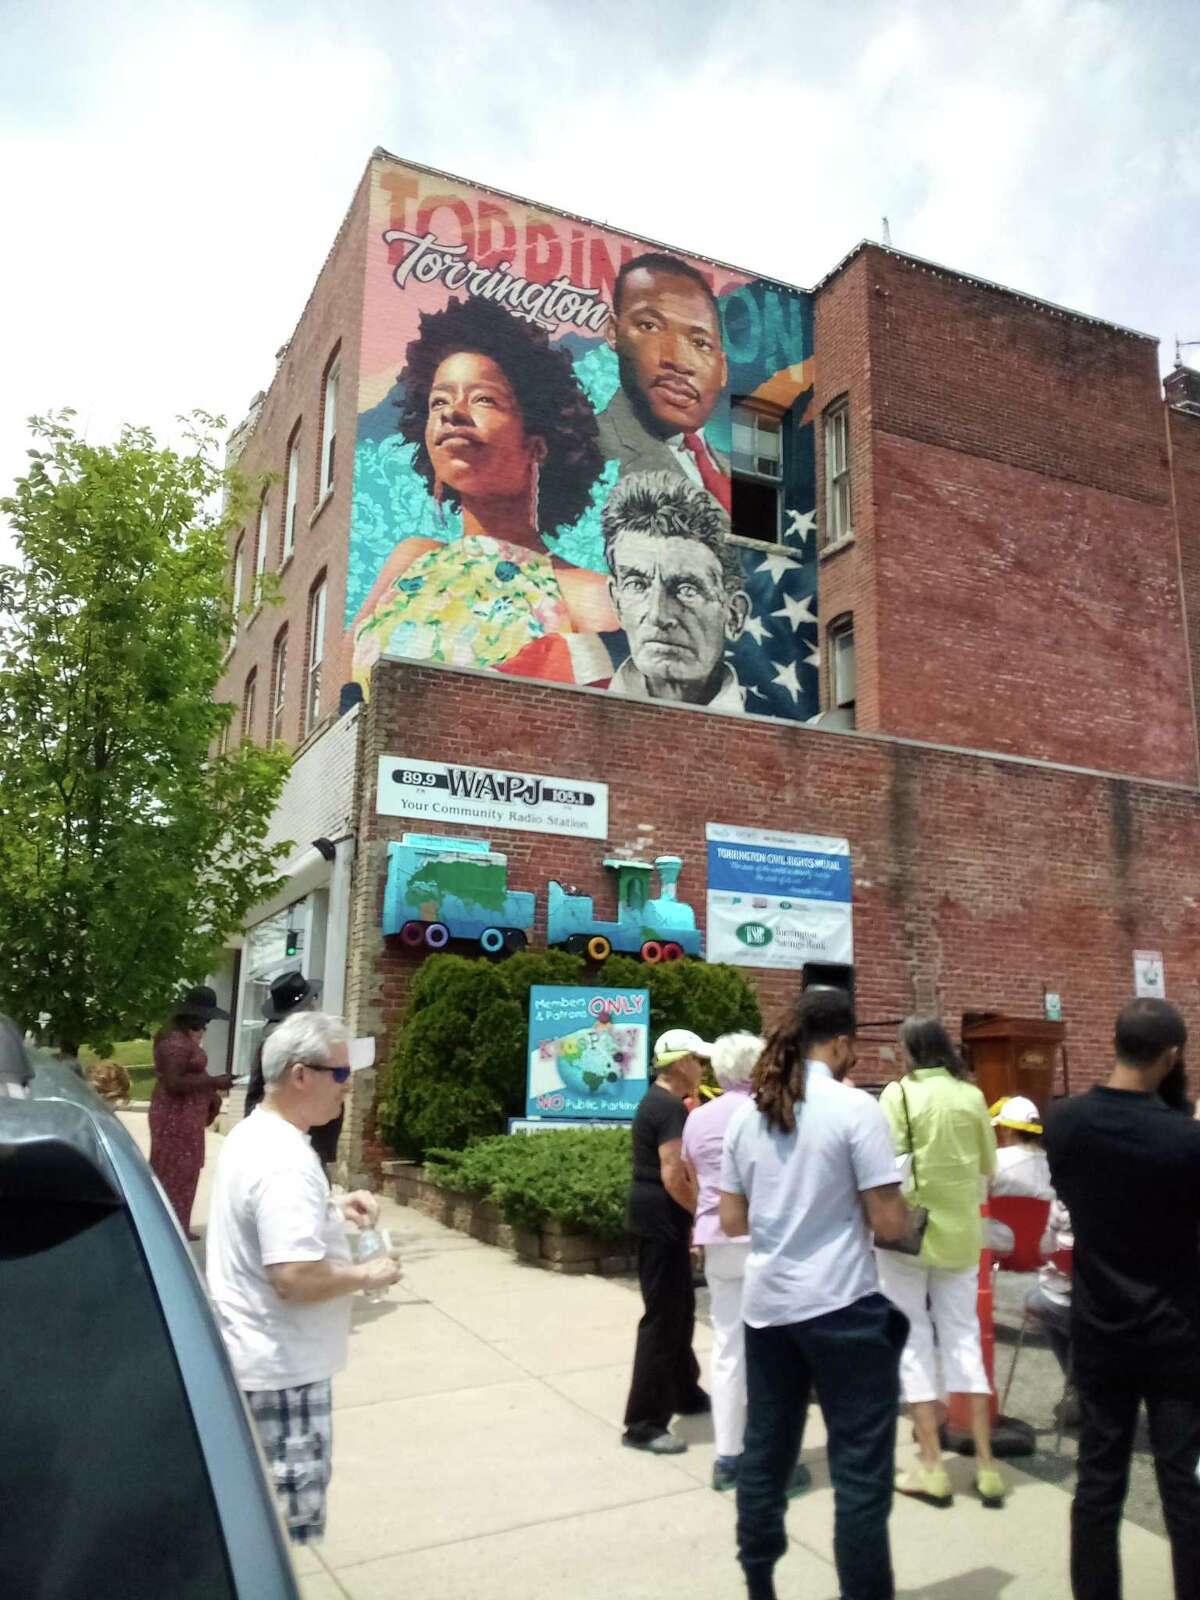 Juneteenth was celebrated on Water Street in Torrington Saturday. The gathering included speeches, music, African drumming, a ballet performance and the official unveiling of the MLK mural on the wall of the WAPJ building.